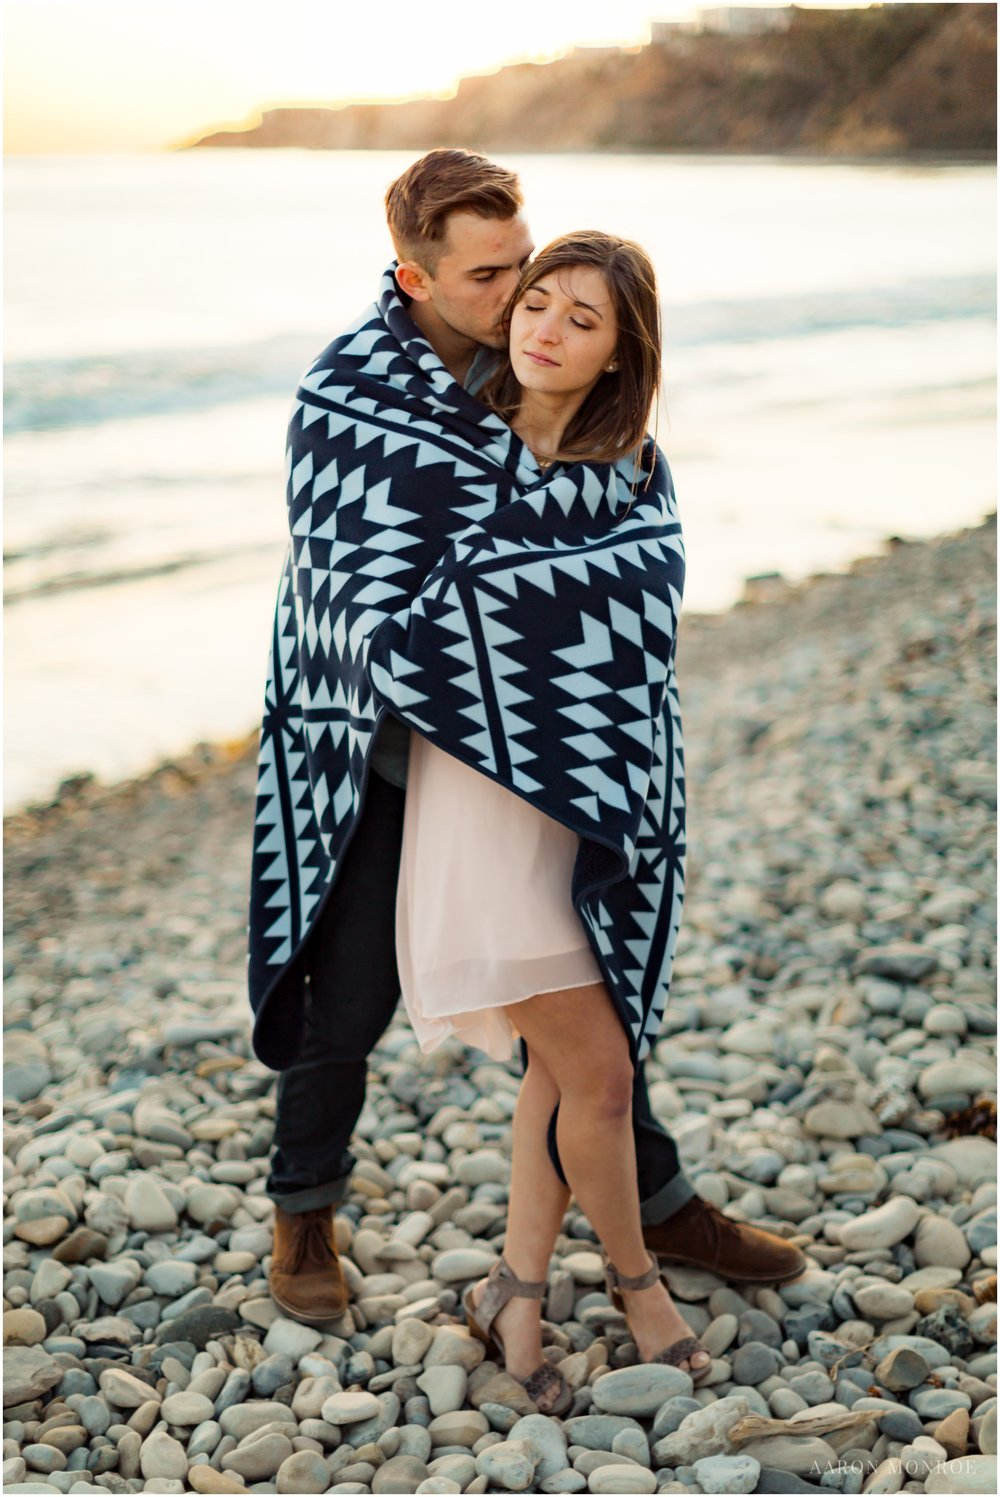 Abalone_Cove_Engagement_Los_Angeles_Wedding_Photographer_0307.jpg